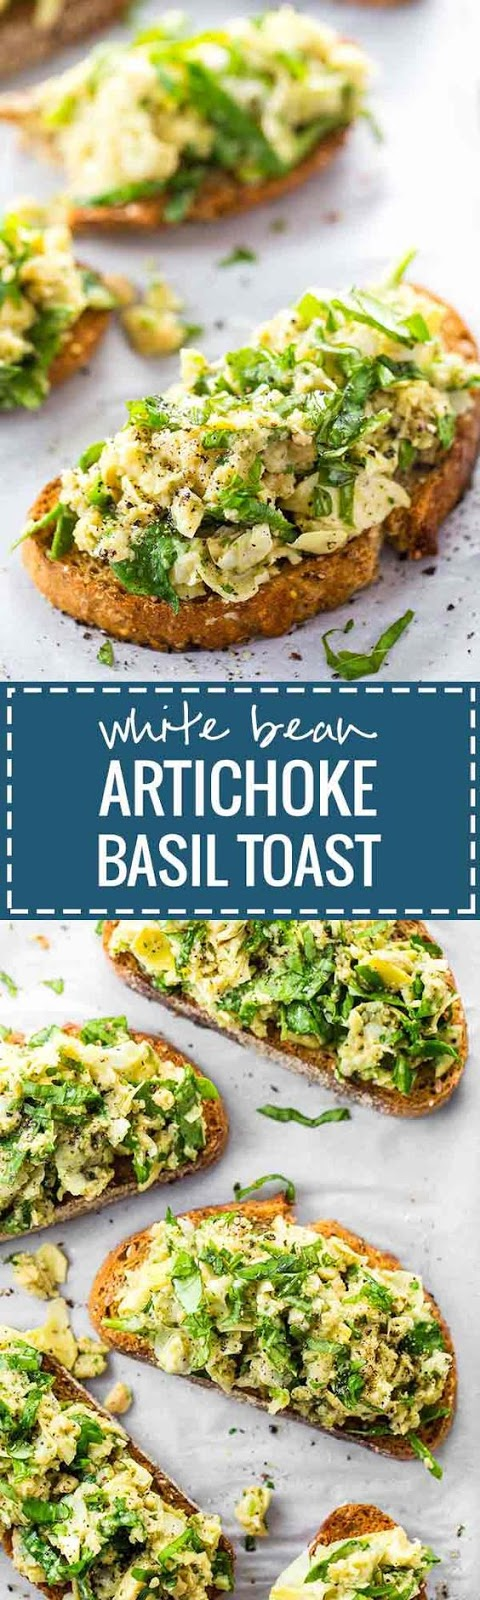 White Bean Artichoke Basil Toasts - a tangy, fresh 10 minute artichoke and basil salad loaded on whole wheat toast. Vegan.